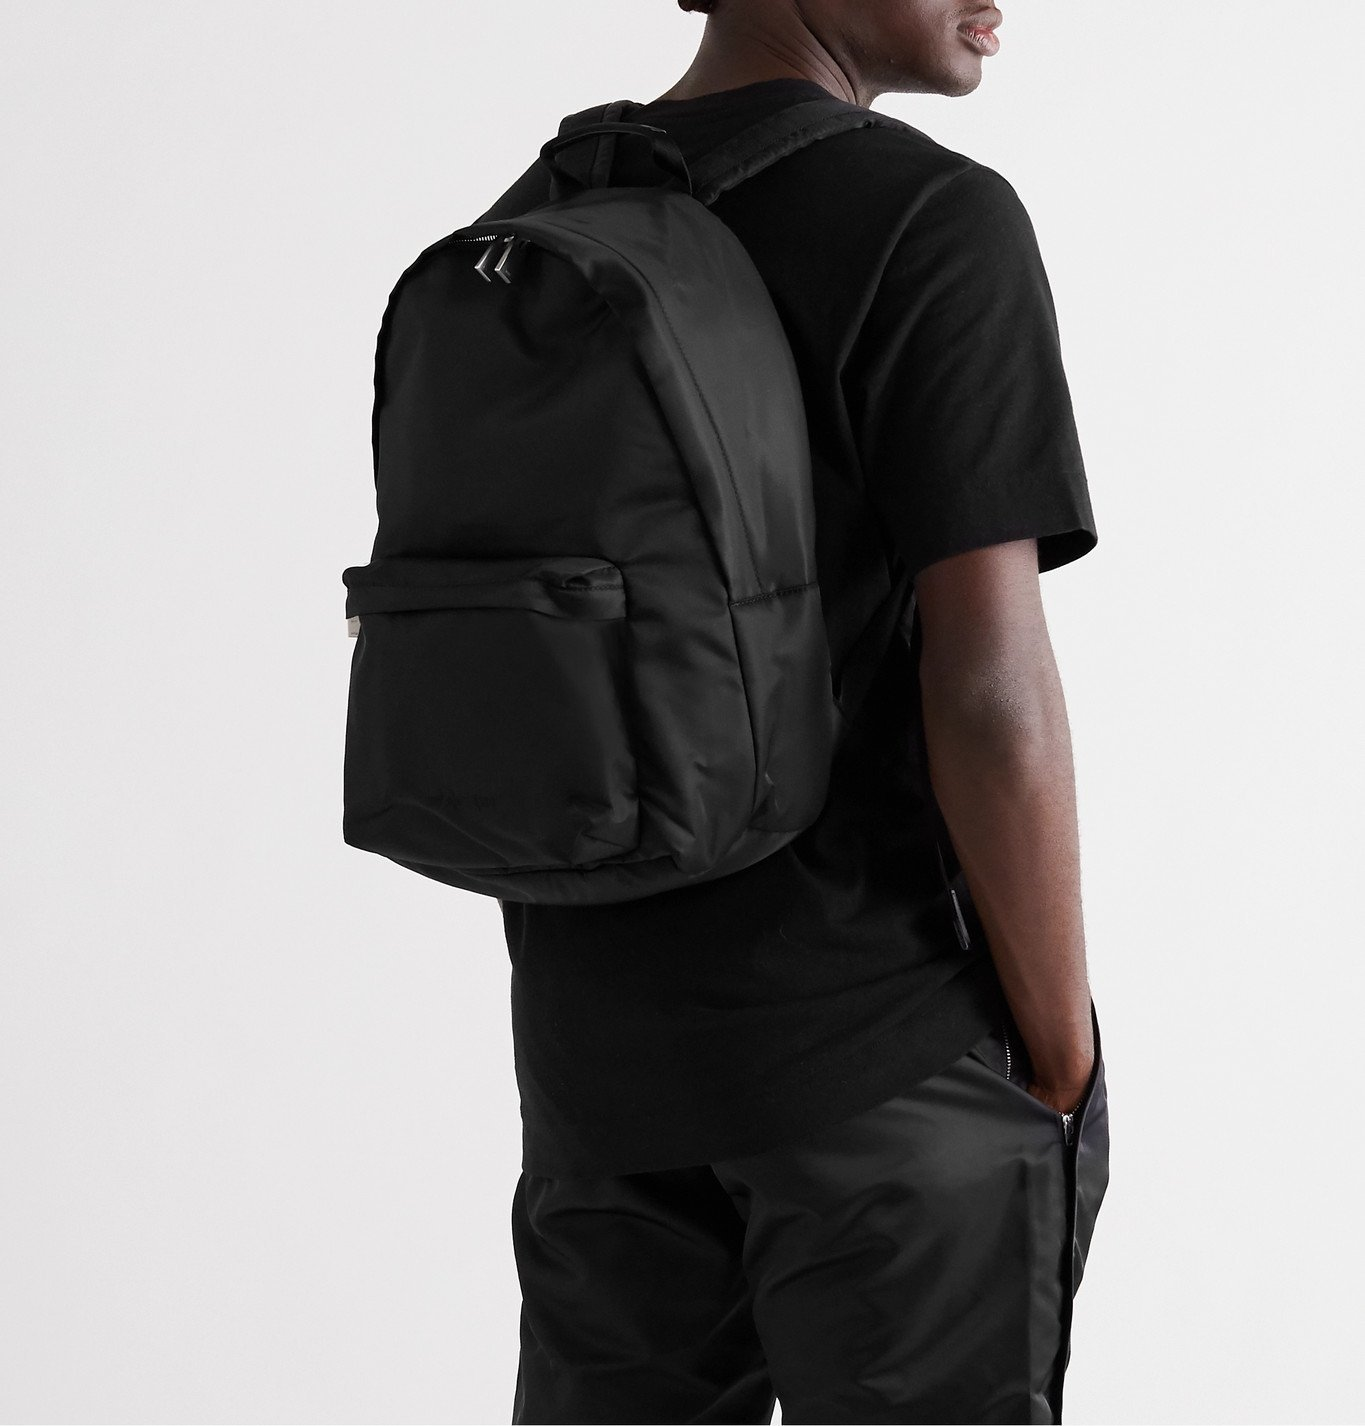 1017 ALYX 9SM - Fuoripista Nylon Backpack - Black